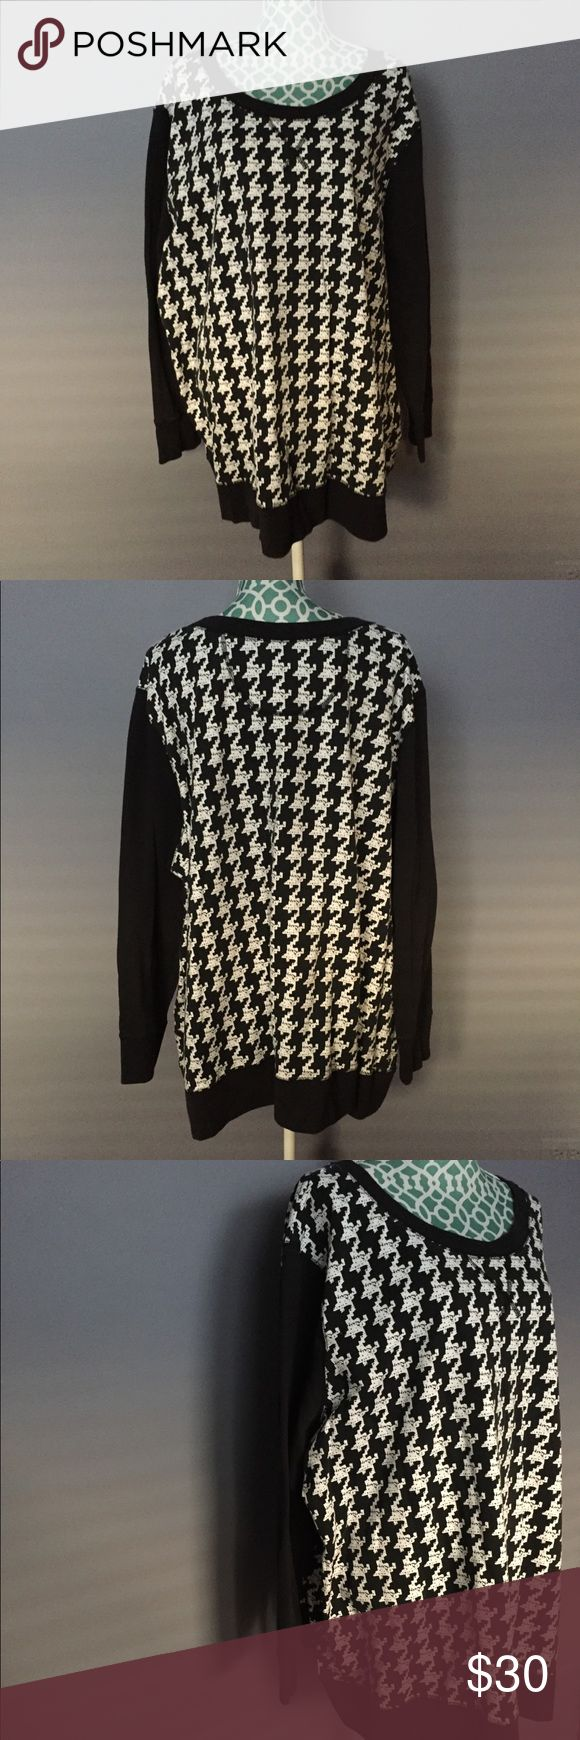 Woman Within Black & White Houndstooth Sweatshirt Excellent condition! Worn once! The black and white colors are classics that will never go out of style along with the chic houndstooth print! Super comfy! Measurements to come. No trades. Reasonable offers welcomed. Woman Within Tops Sweatshirts & Hoodies